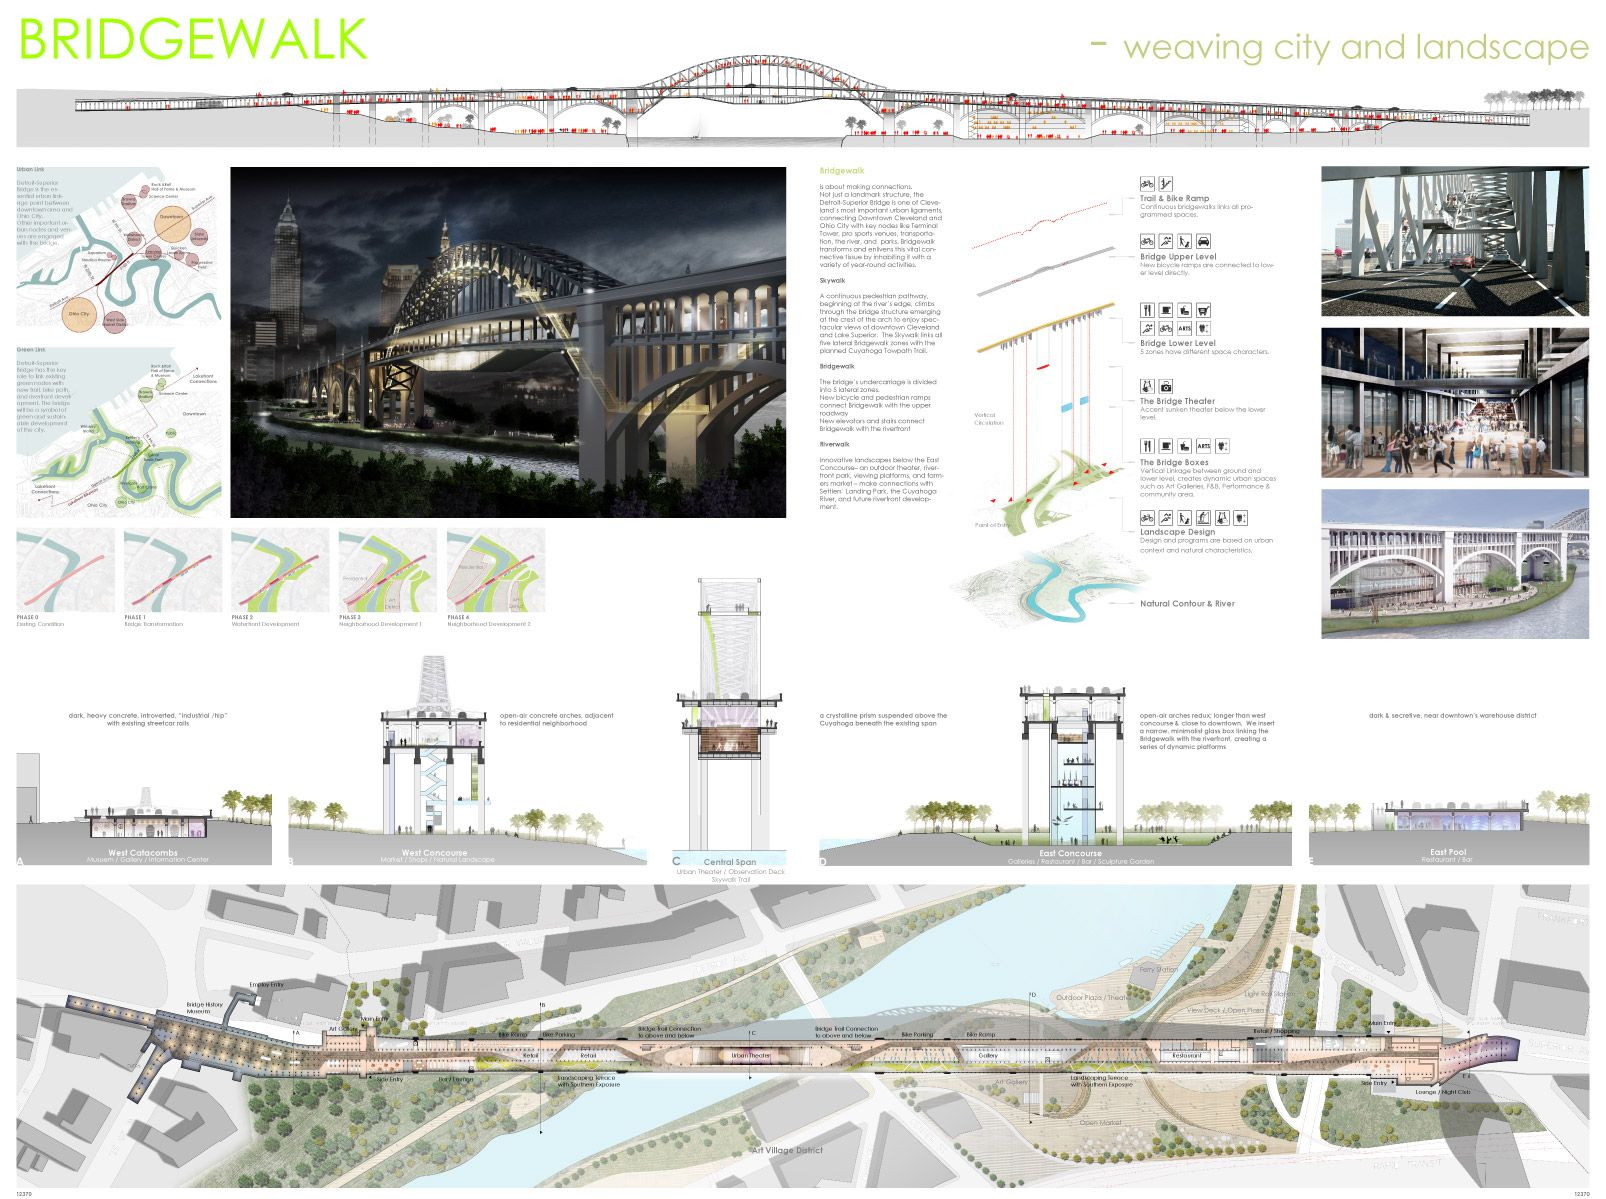 Merveilleux Bustler: Two Projects Share First Place At 2012 Cleveland Design Competition    Transforming The Bridge